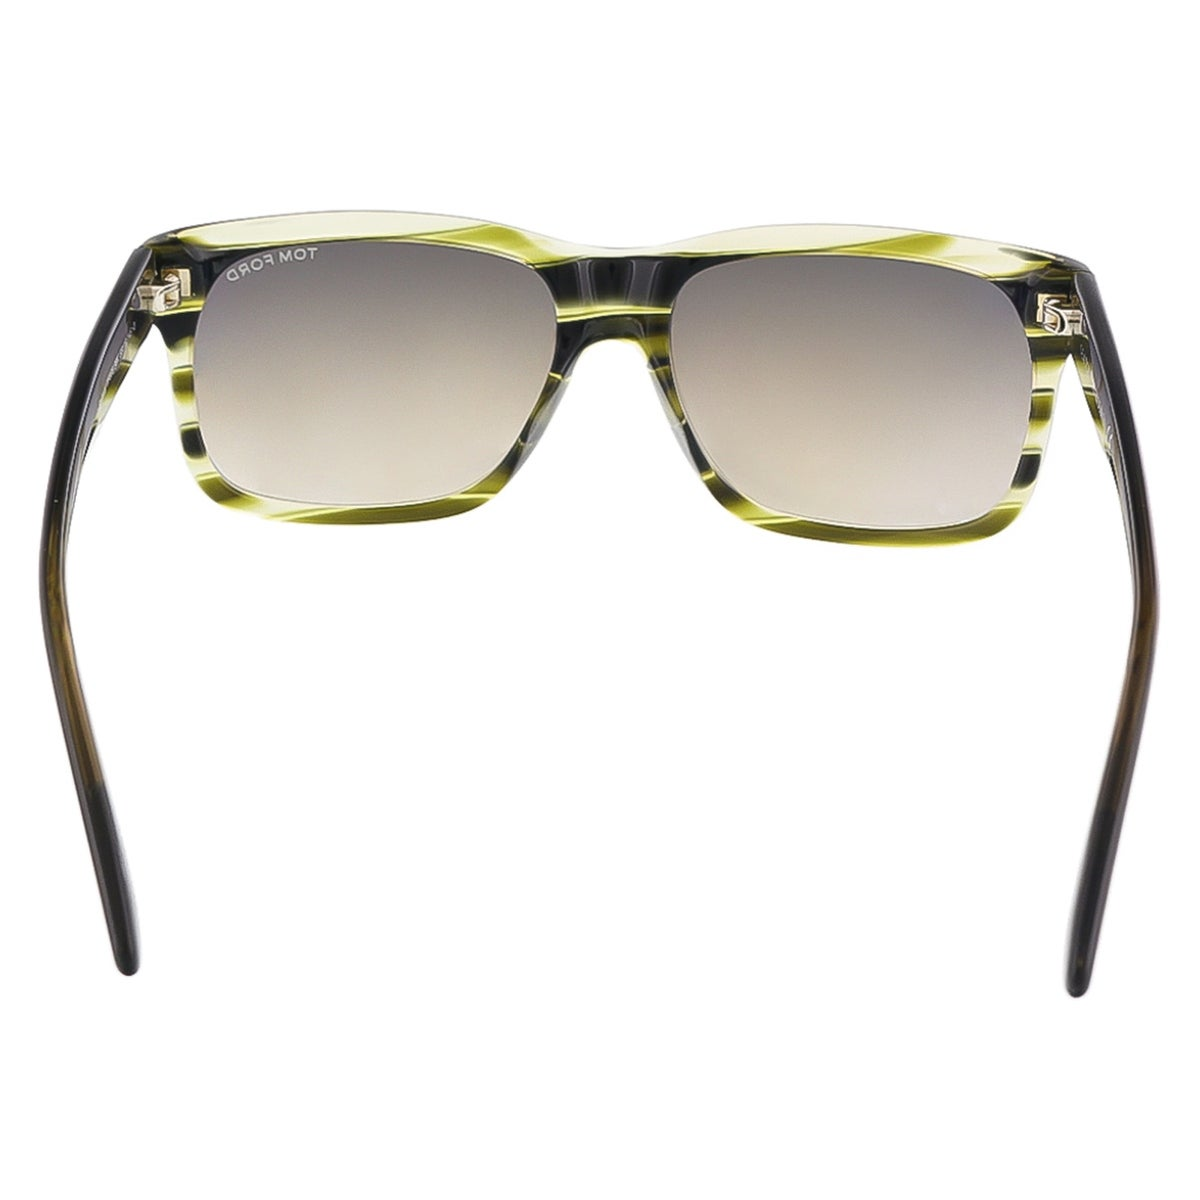 89556603e1b4d Shop Tom Ford FT0376 S 98K BARBARA Olive Green Rectangular sunglasses - 58- 16-145 - Free Shipping Today - Overstock - 13318254